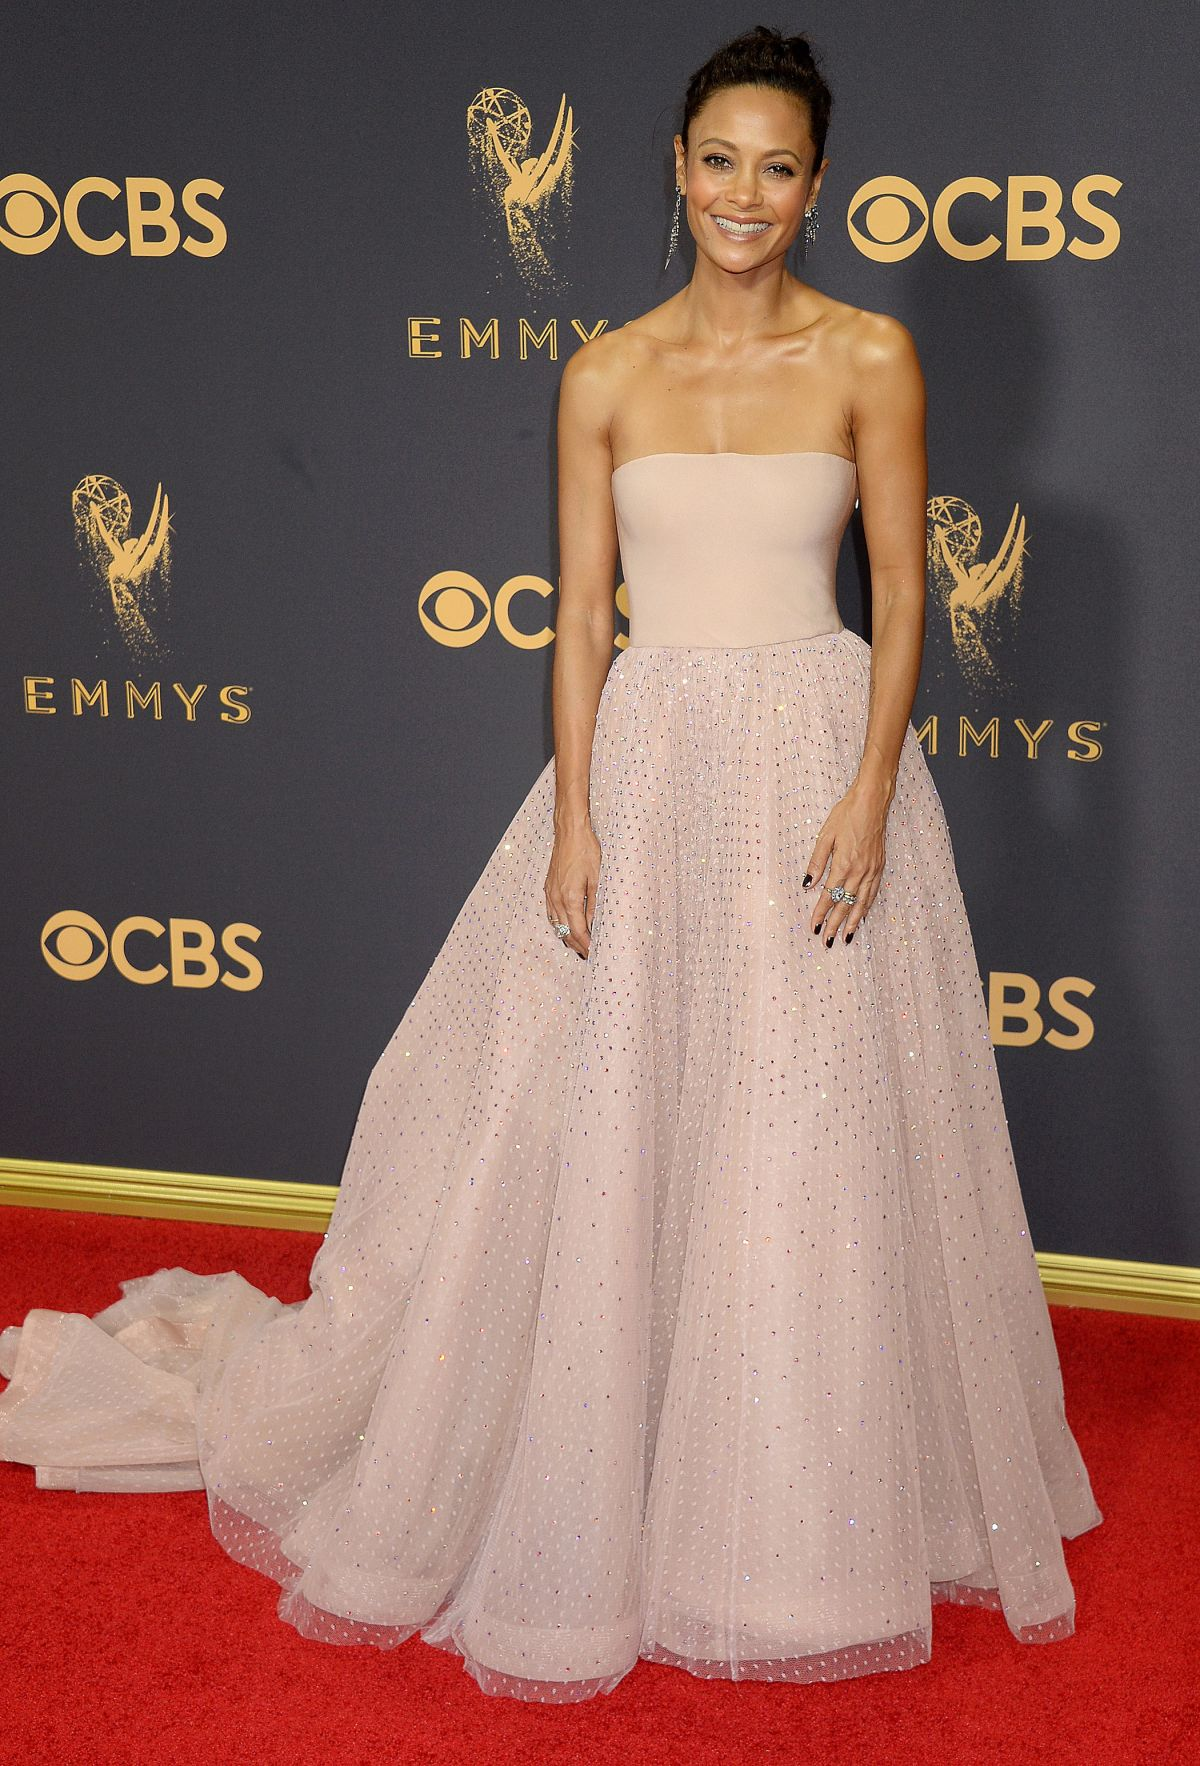 THANDIE NEWTON at 69th Annual Primetime EMMY Awards in Los Angeles 09/17/2017